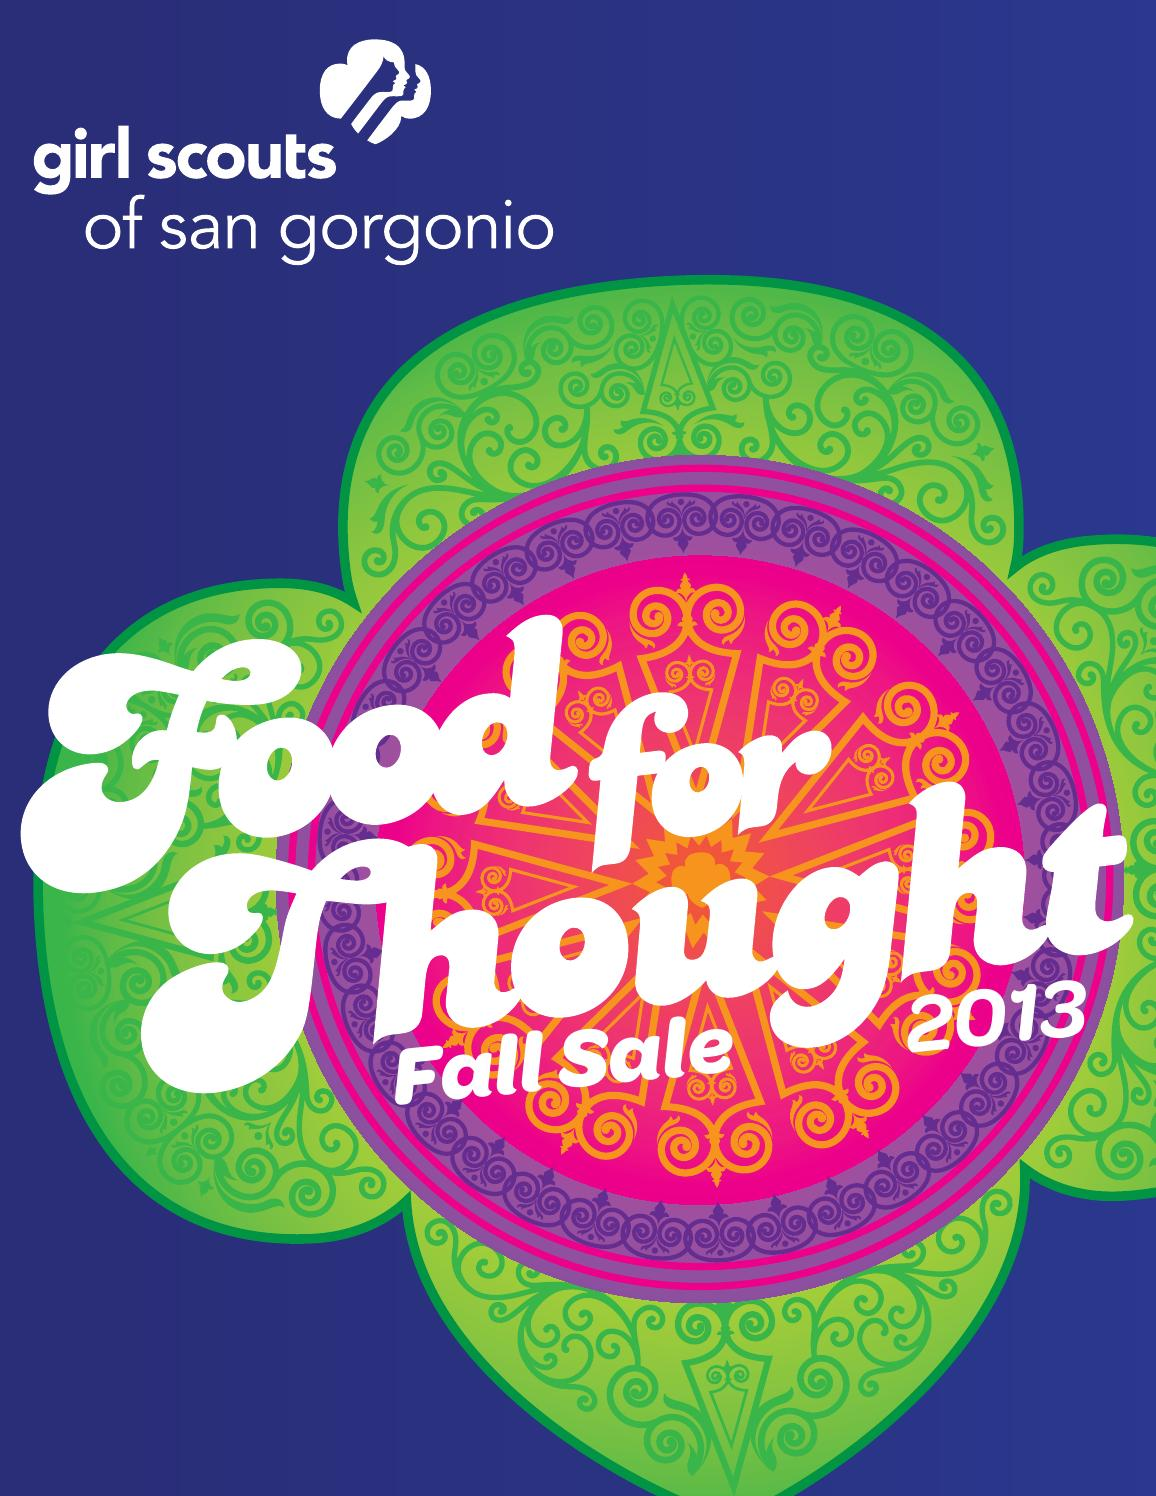 fft fall sale 2013 finalv3web by girl scouts of san gorgonio issuu